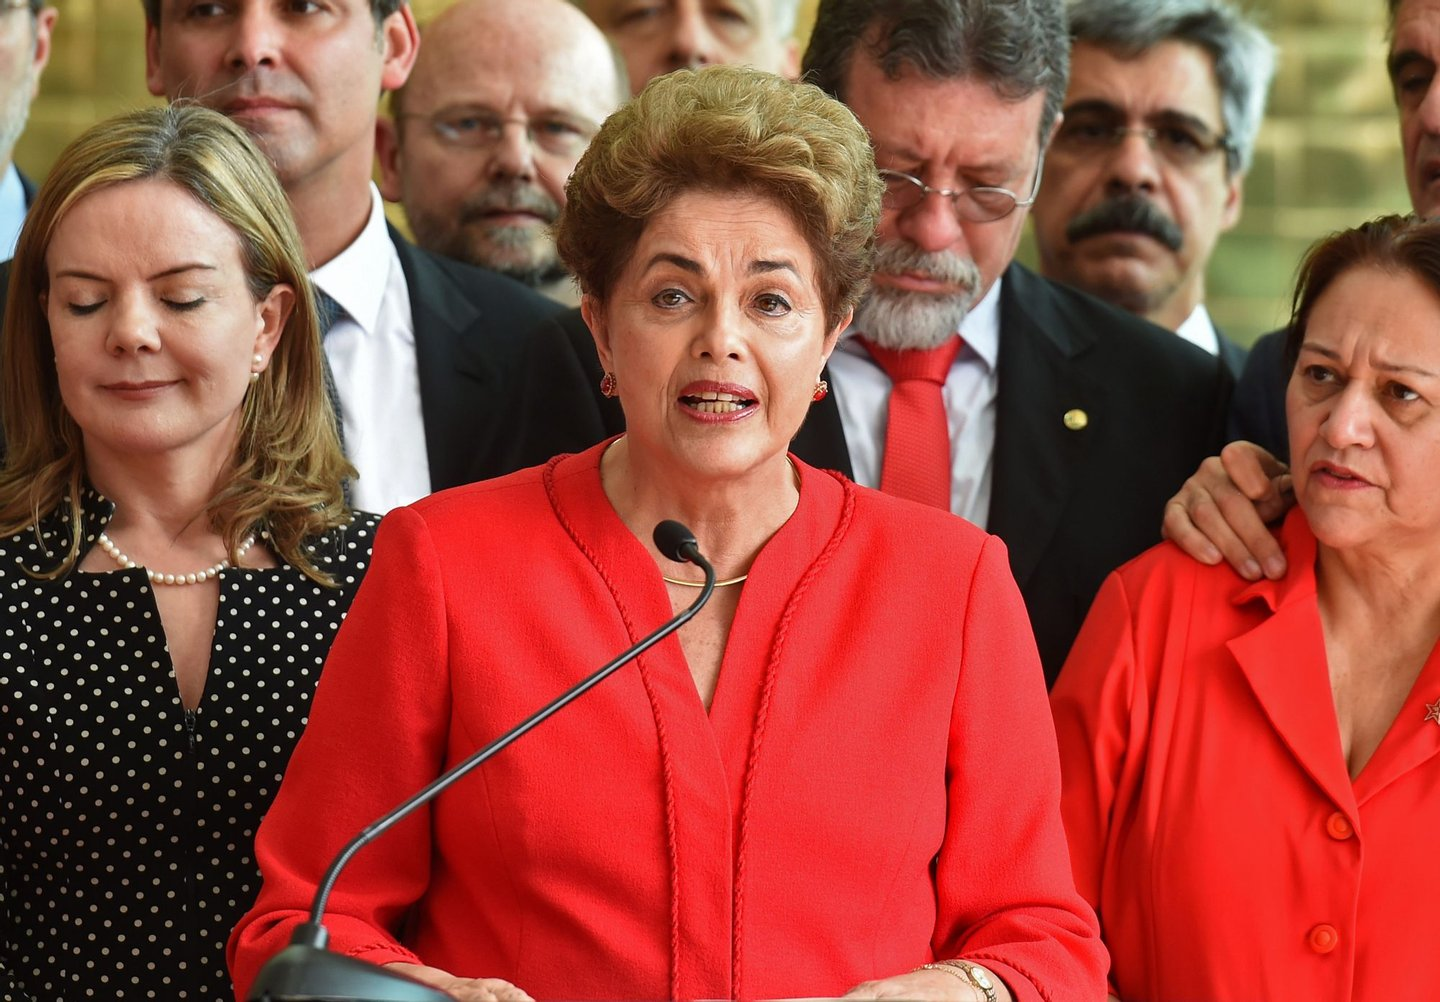 Brazil's former Dilma Rousseff speaks at the Alvorada presidential palace in Brasilia after she was stripped of the country's presidency in a Senate impeachment vote on August 31, 2016. Rousseff was stripped of the country's presidency Wednesday in a Senate impeachment vote ending 13 years of leftist rule in Latin America's biggest economy. Rousseff, 68, was convicted by 61 of the 81 senators of illegally manipulating the national budget. The vote, passing the needed two-thirds majority, meant she was immediately removed from office. / AFP / EVARISTO SA (Photo credit should read EVARISTO SA/AFP/Getty Images)